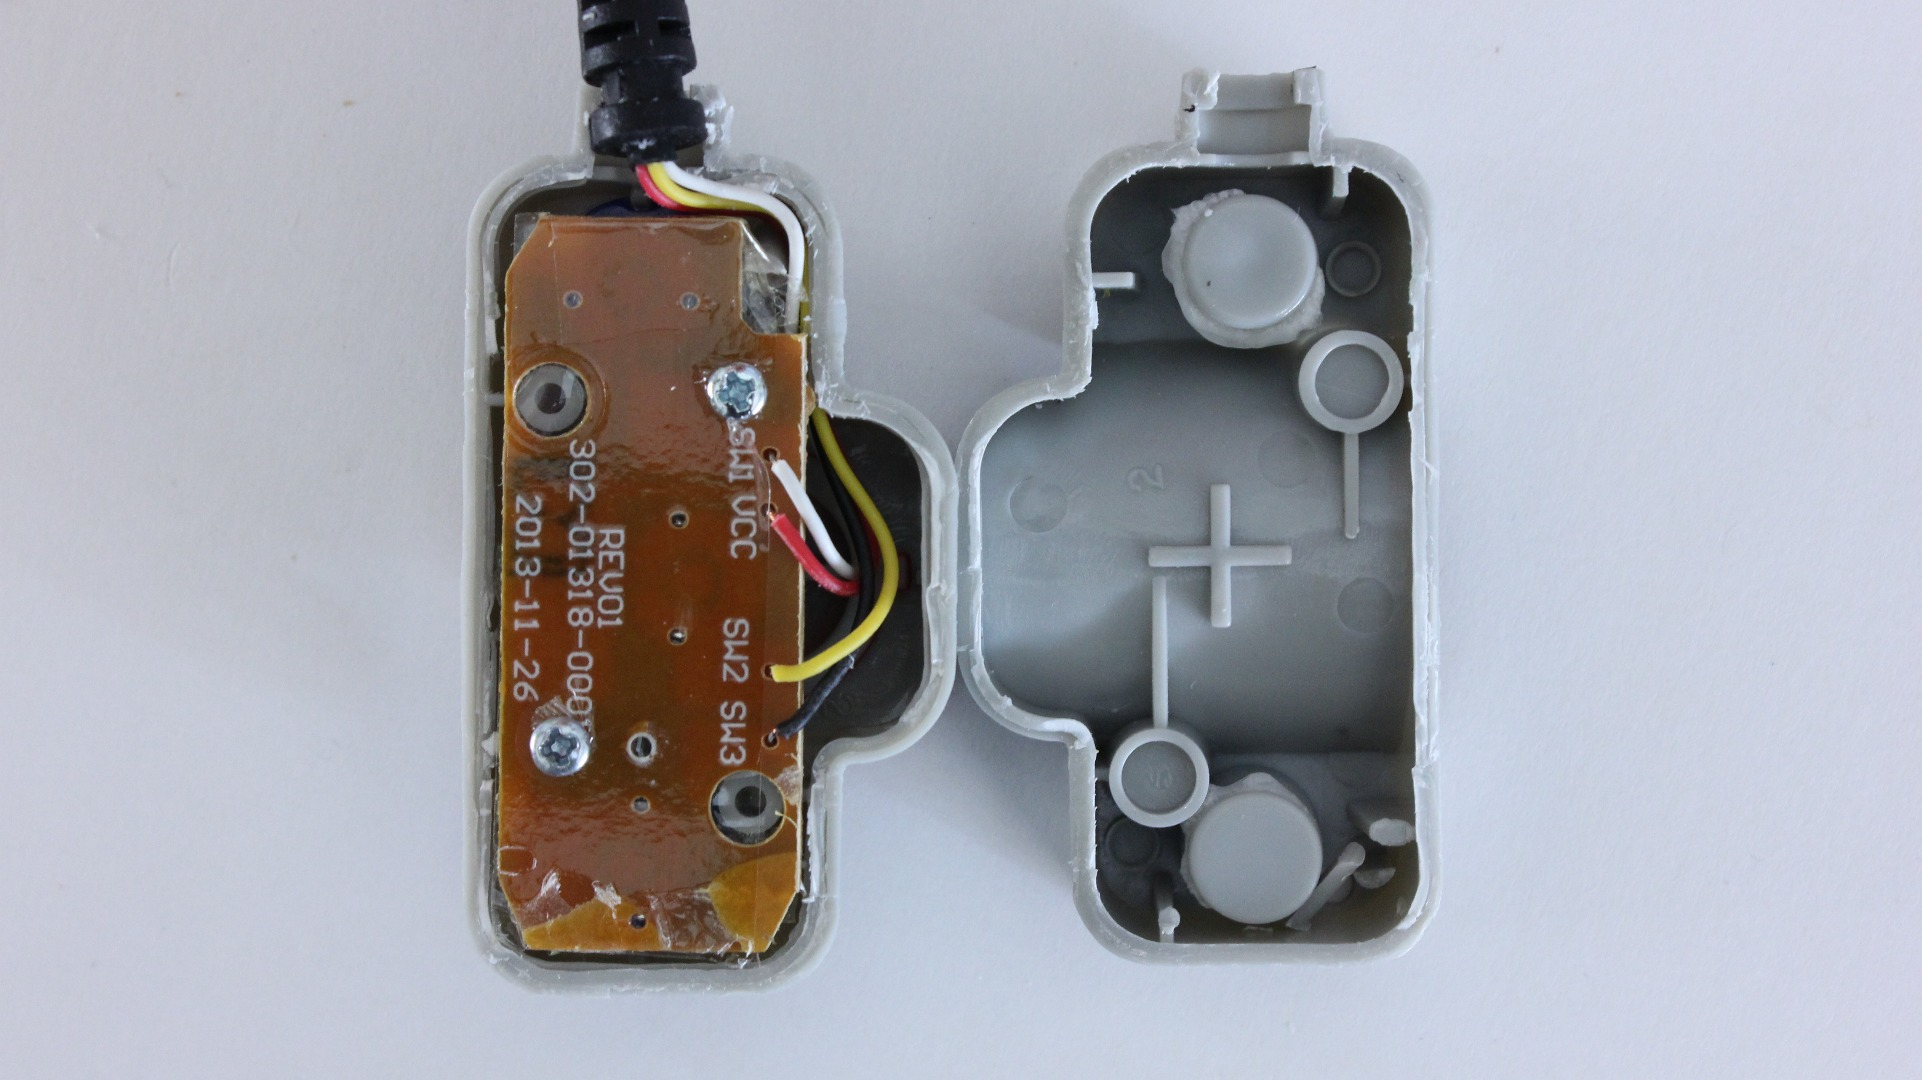 Picture of Open the Housing and Locate the Firing Switch